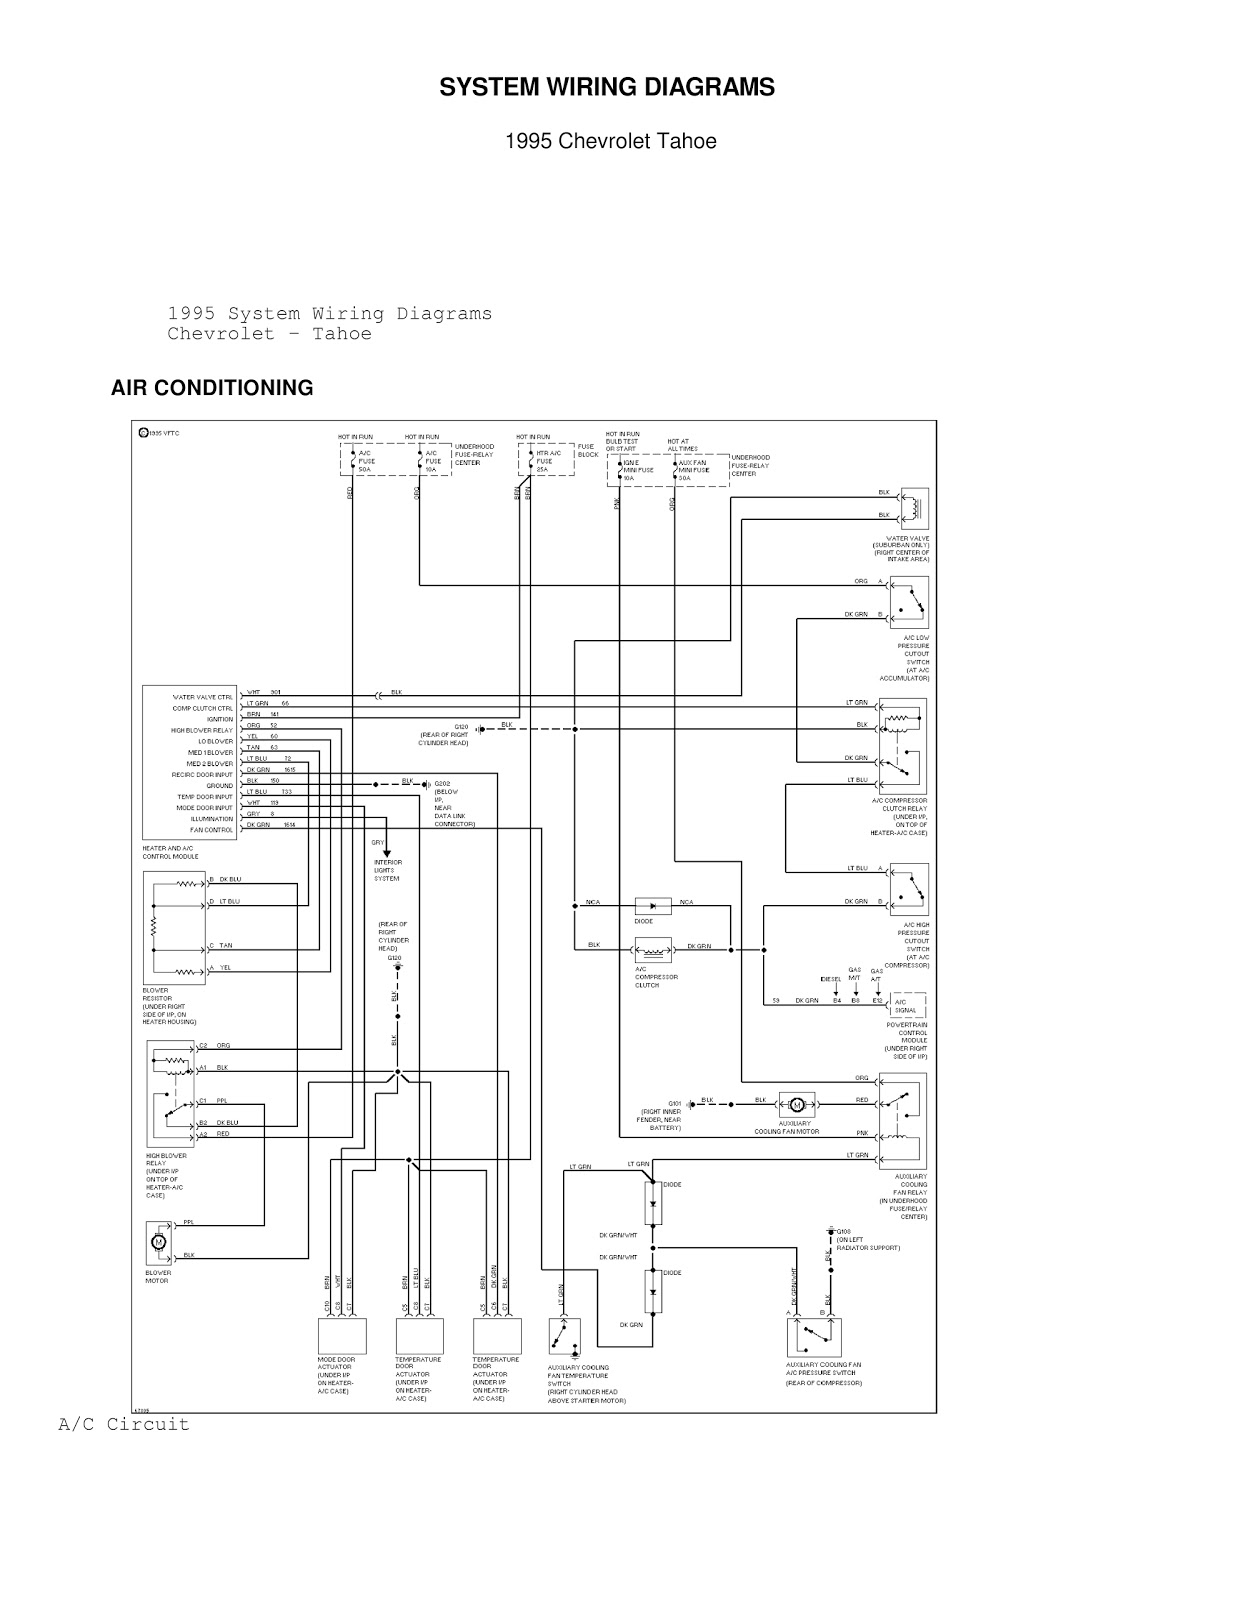 Diagram 2013 Tahoe Wiring Diagram Full Version Hd Quality Wiring Diagram Caramplifierwiringkit Ndesperance Fr